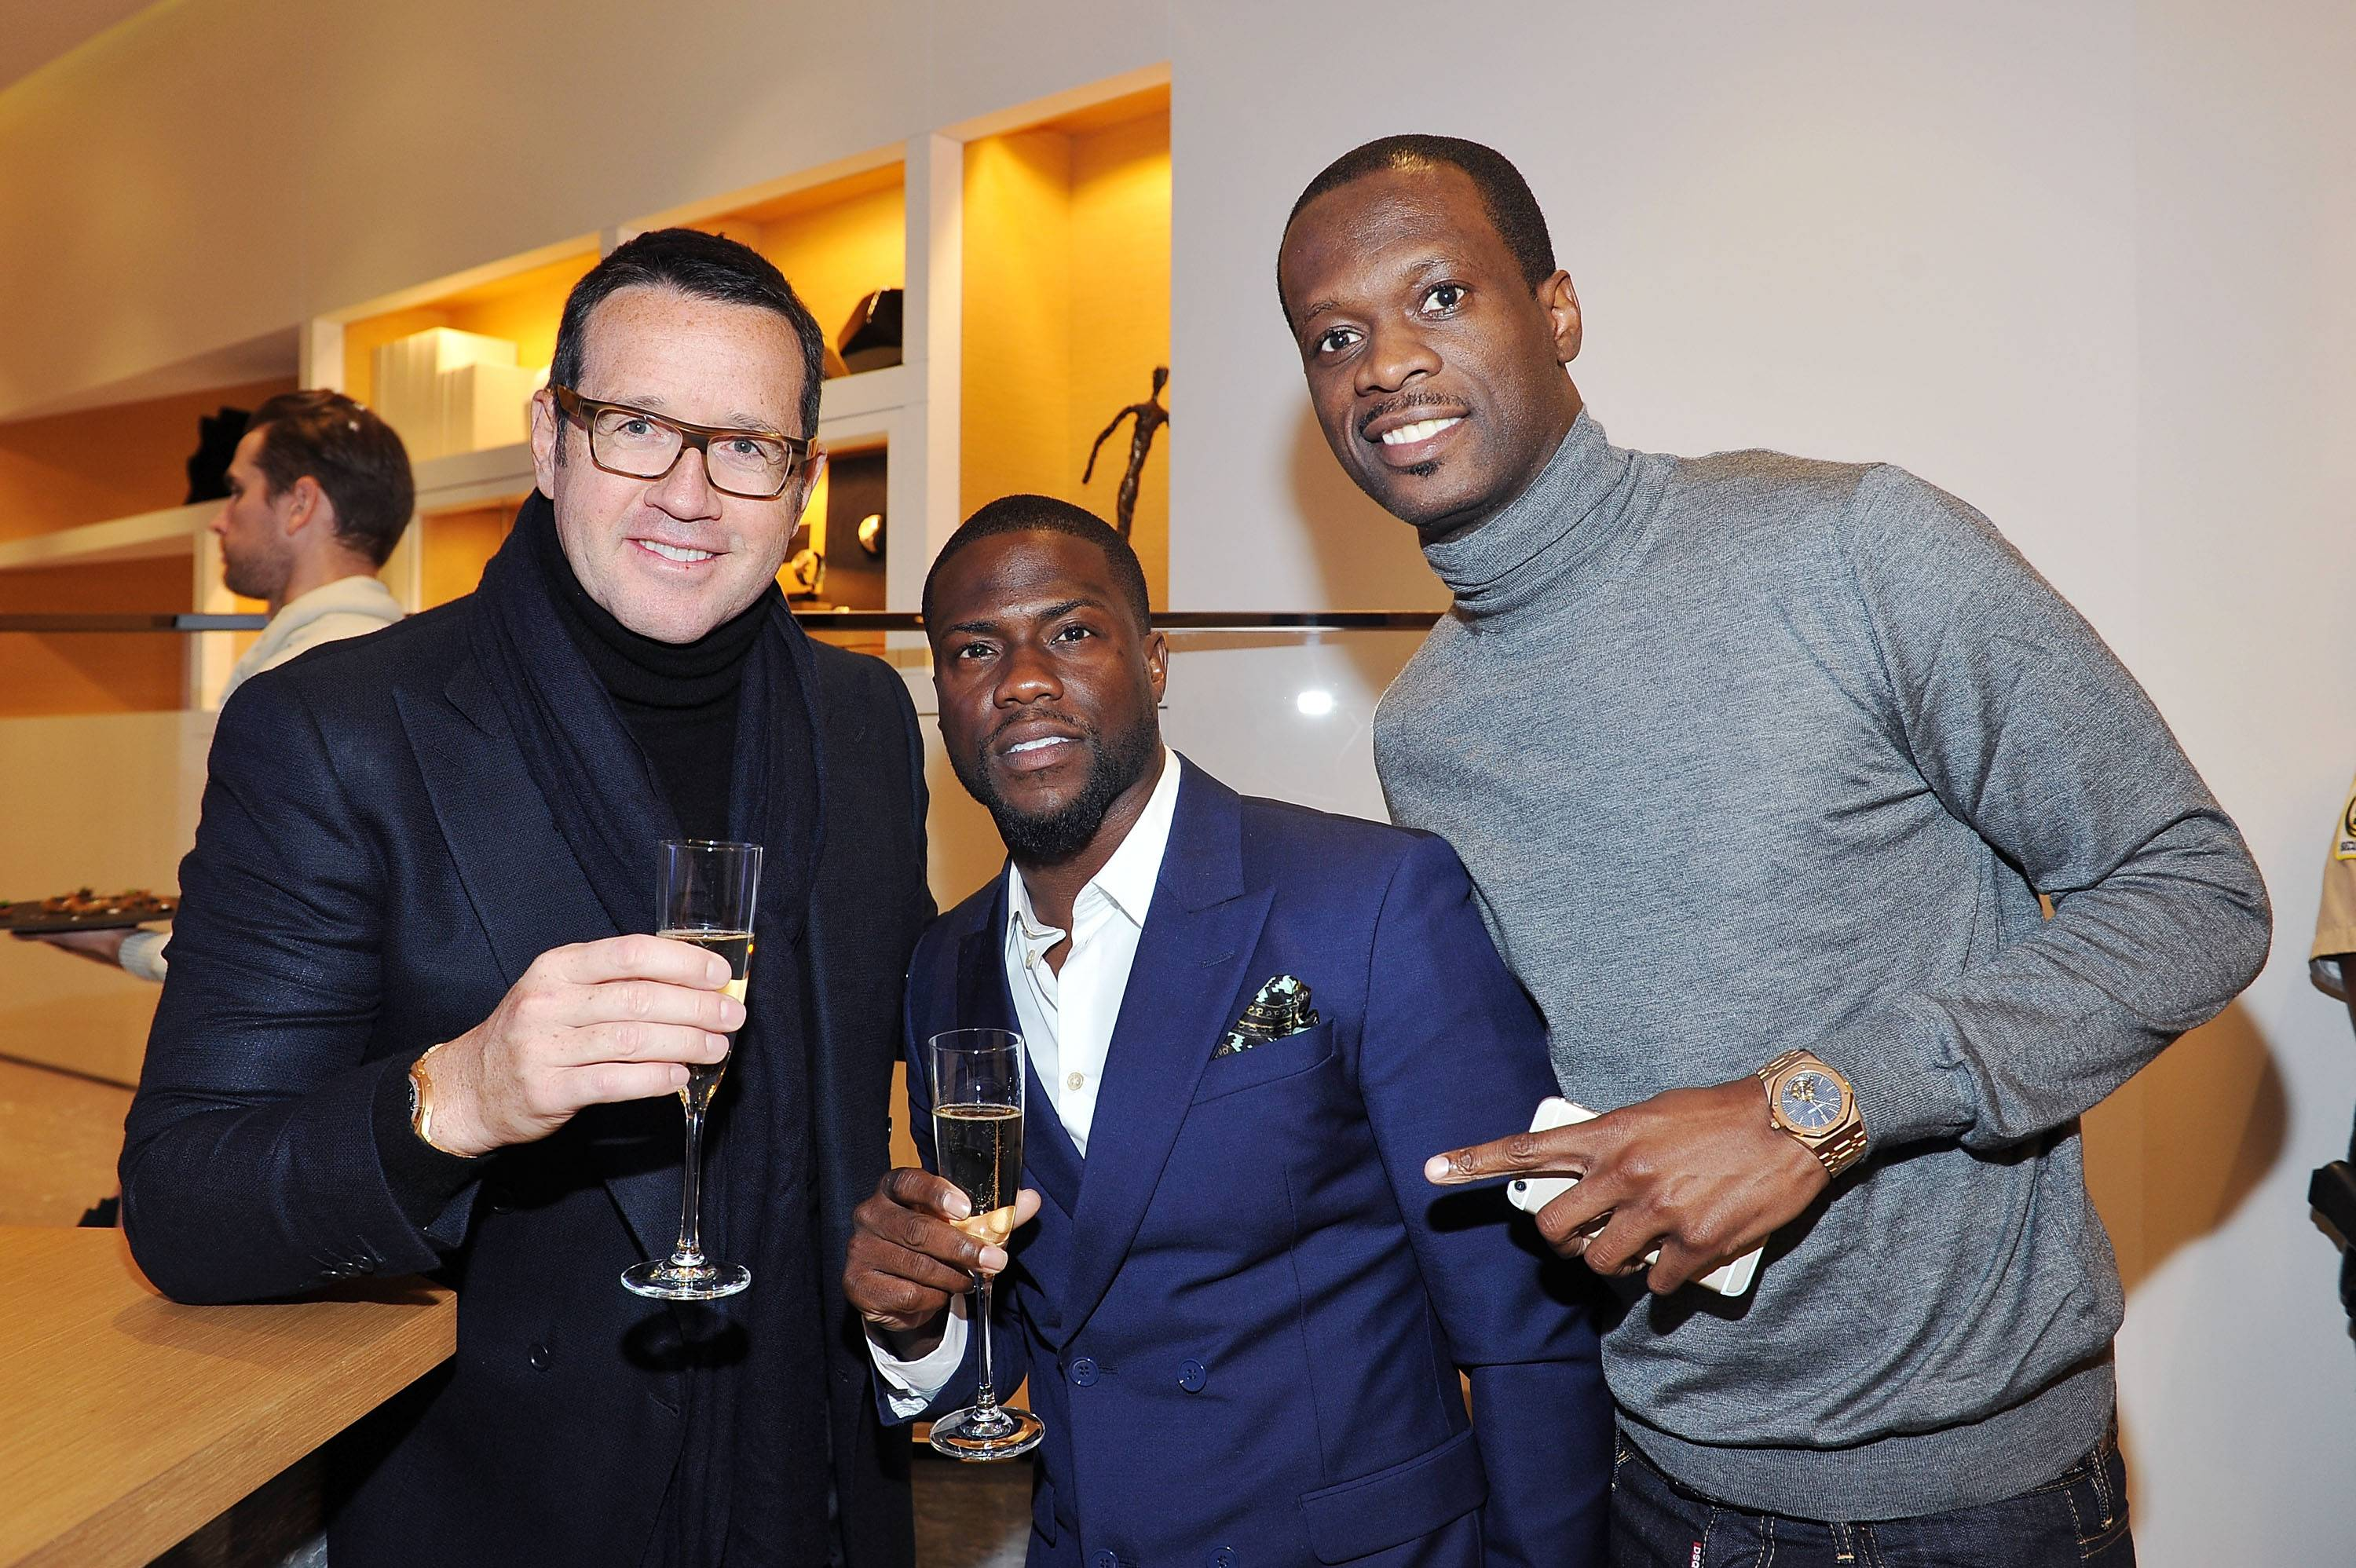 Audemars Piguet Celebrates The Opening Of Its New Boutique On Rodeo